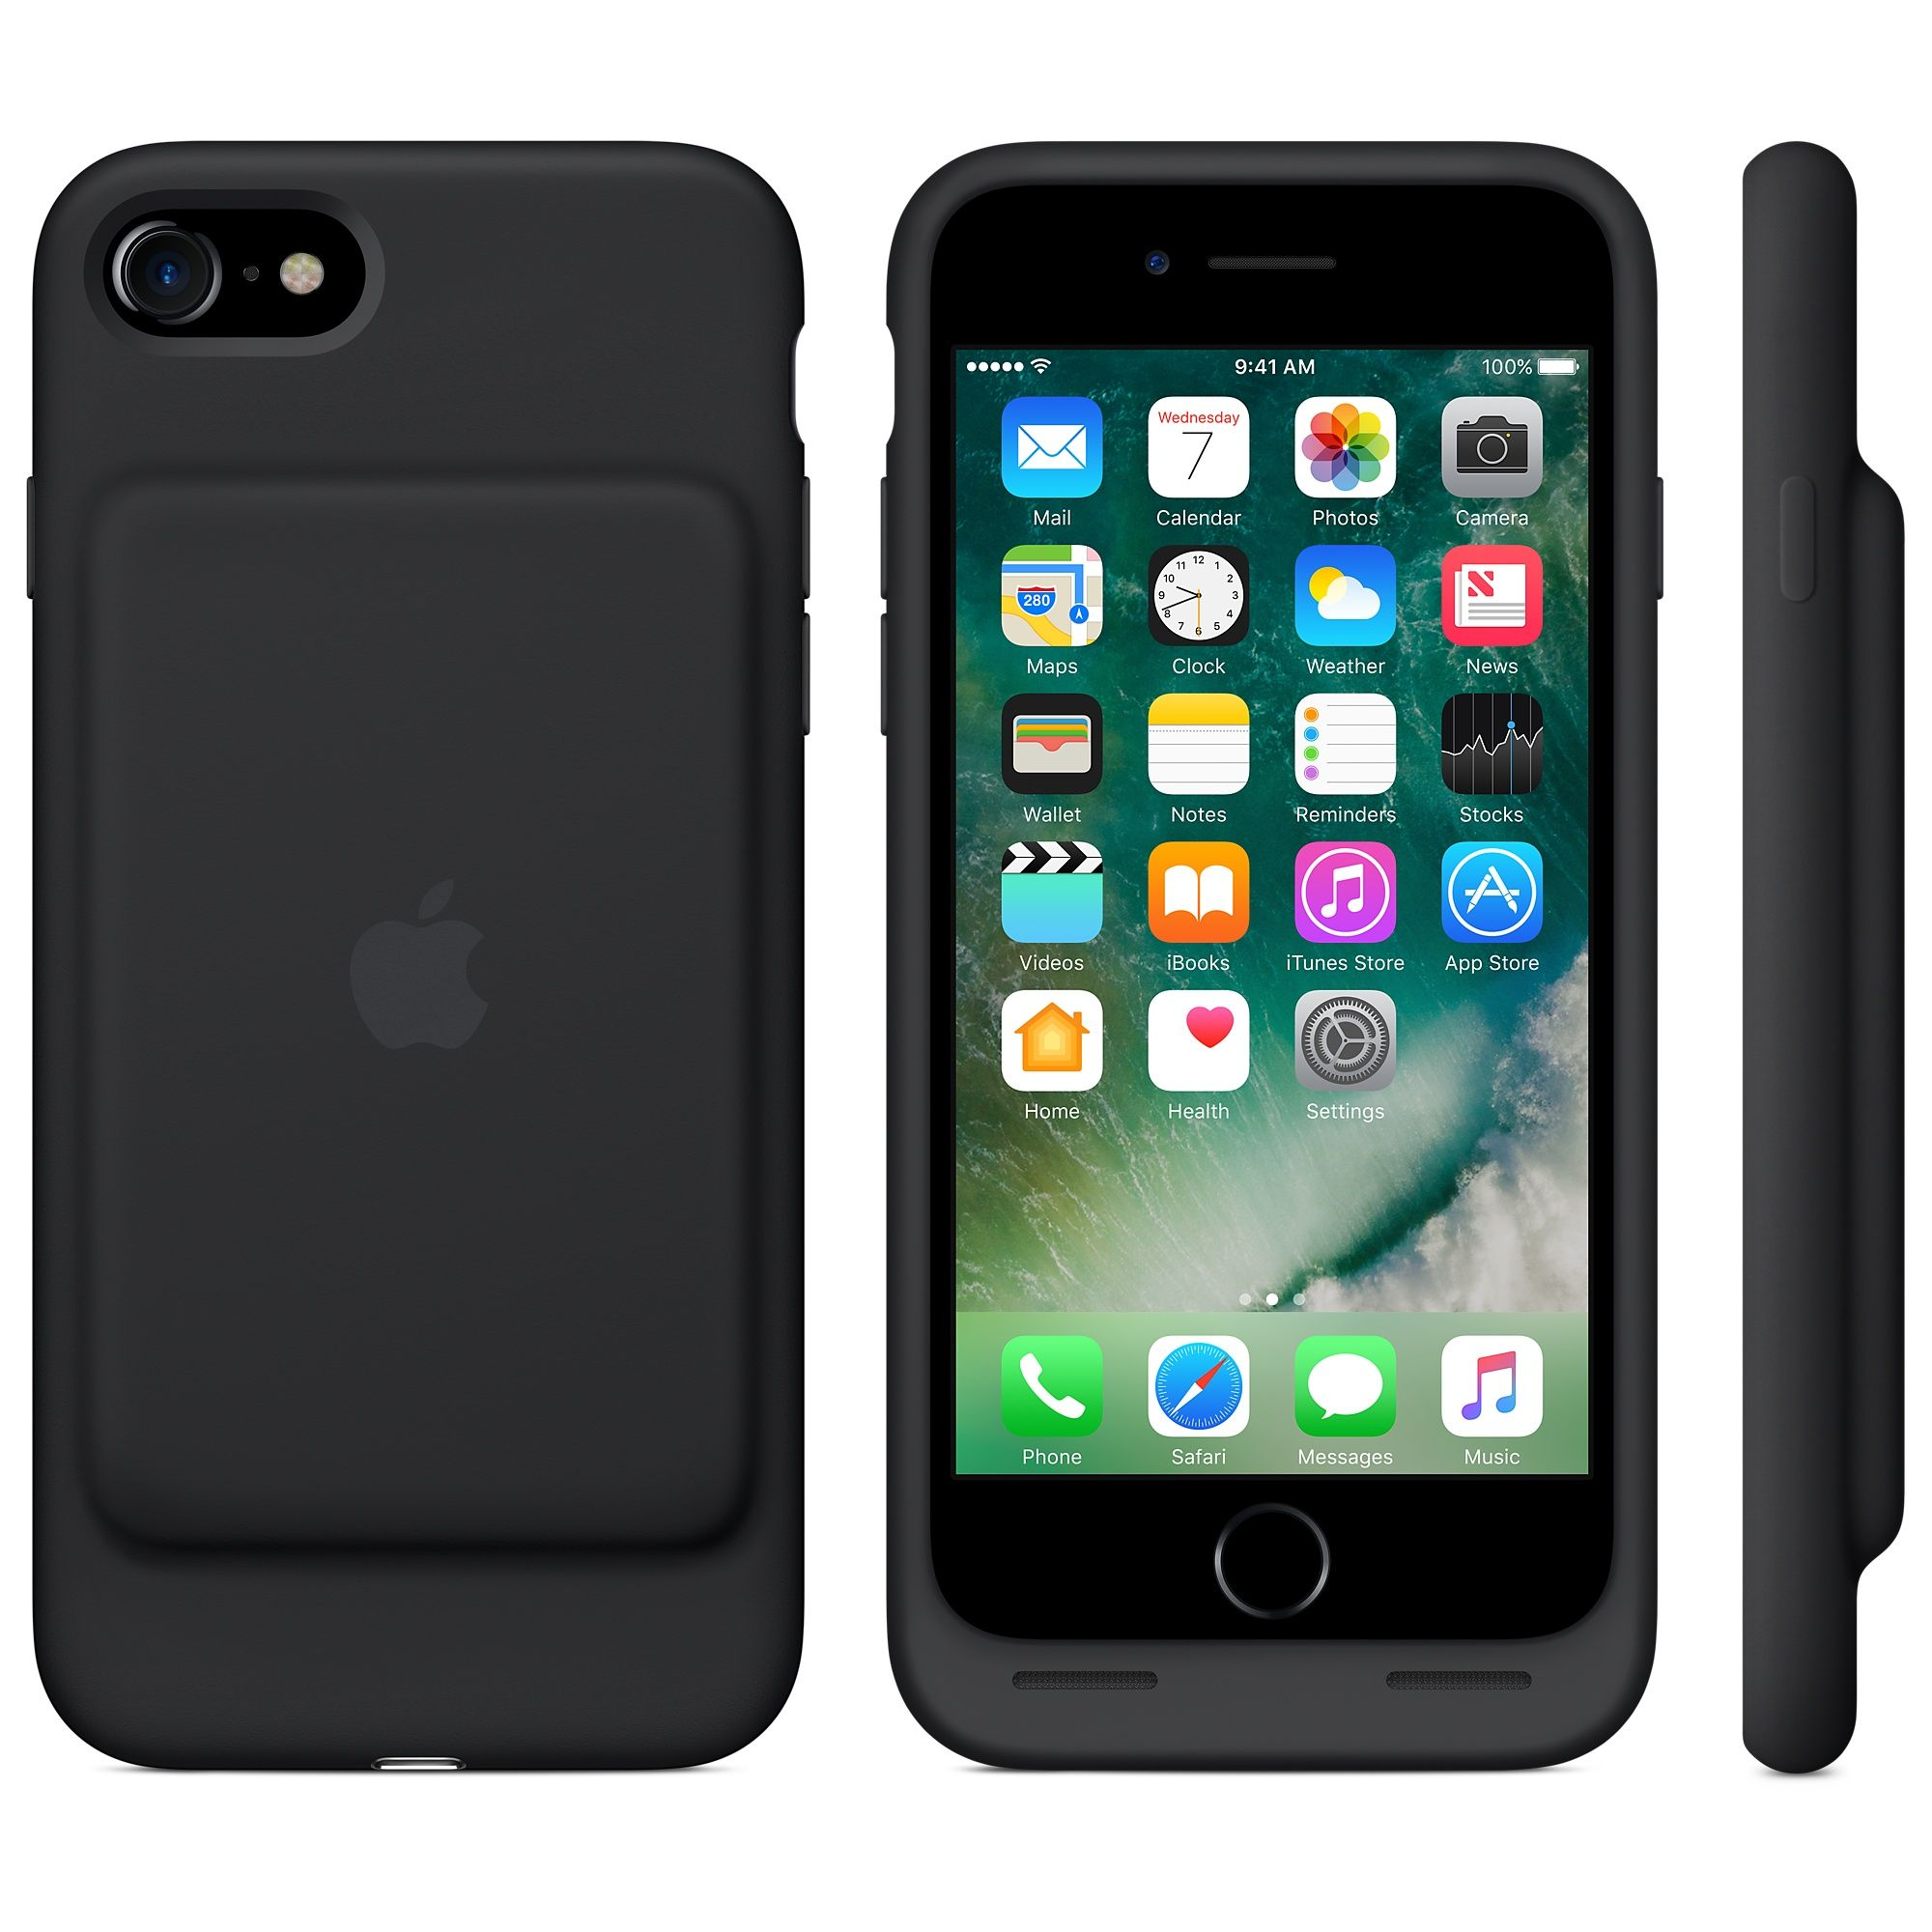 iPhone 7 Smart Battery Case - (PRODUCT)RED   Iphone, Apple iphone case,  Iphone 7